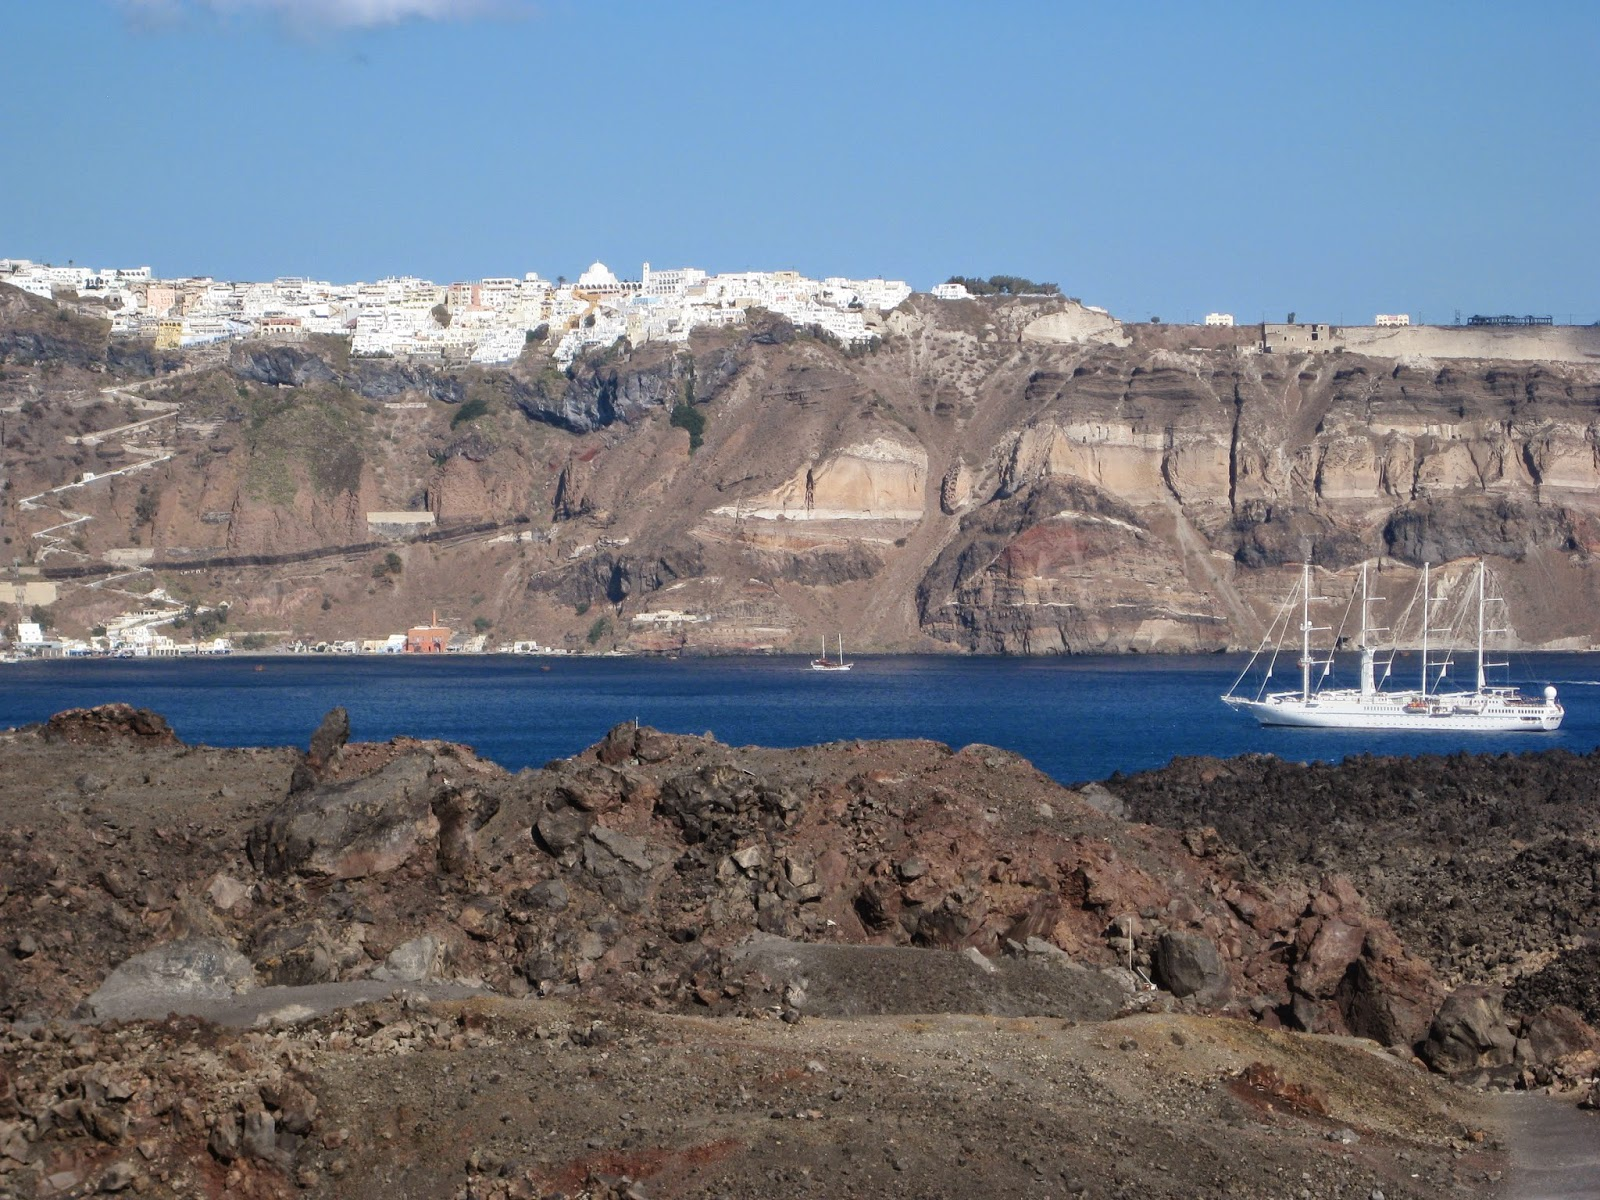 Santorini - Hiking on volcano island which still has smoking craters